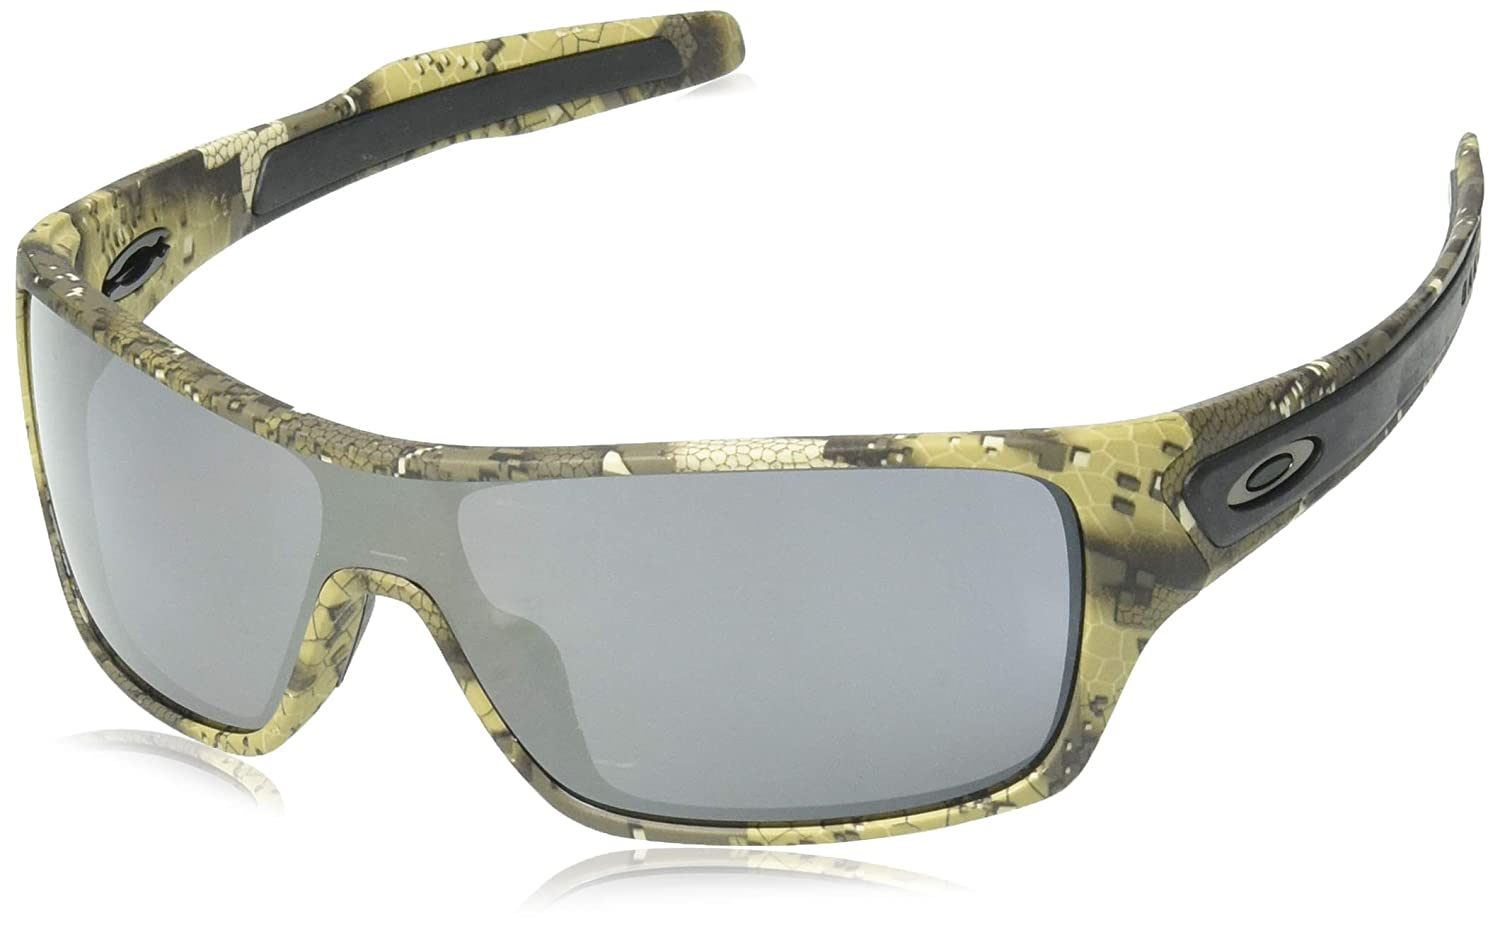 f5821face2 Amazon.com  Oakley Men s Turbine Rotor Non-Polarized Iridium Rectangular  Sunglasses